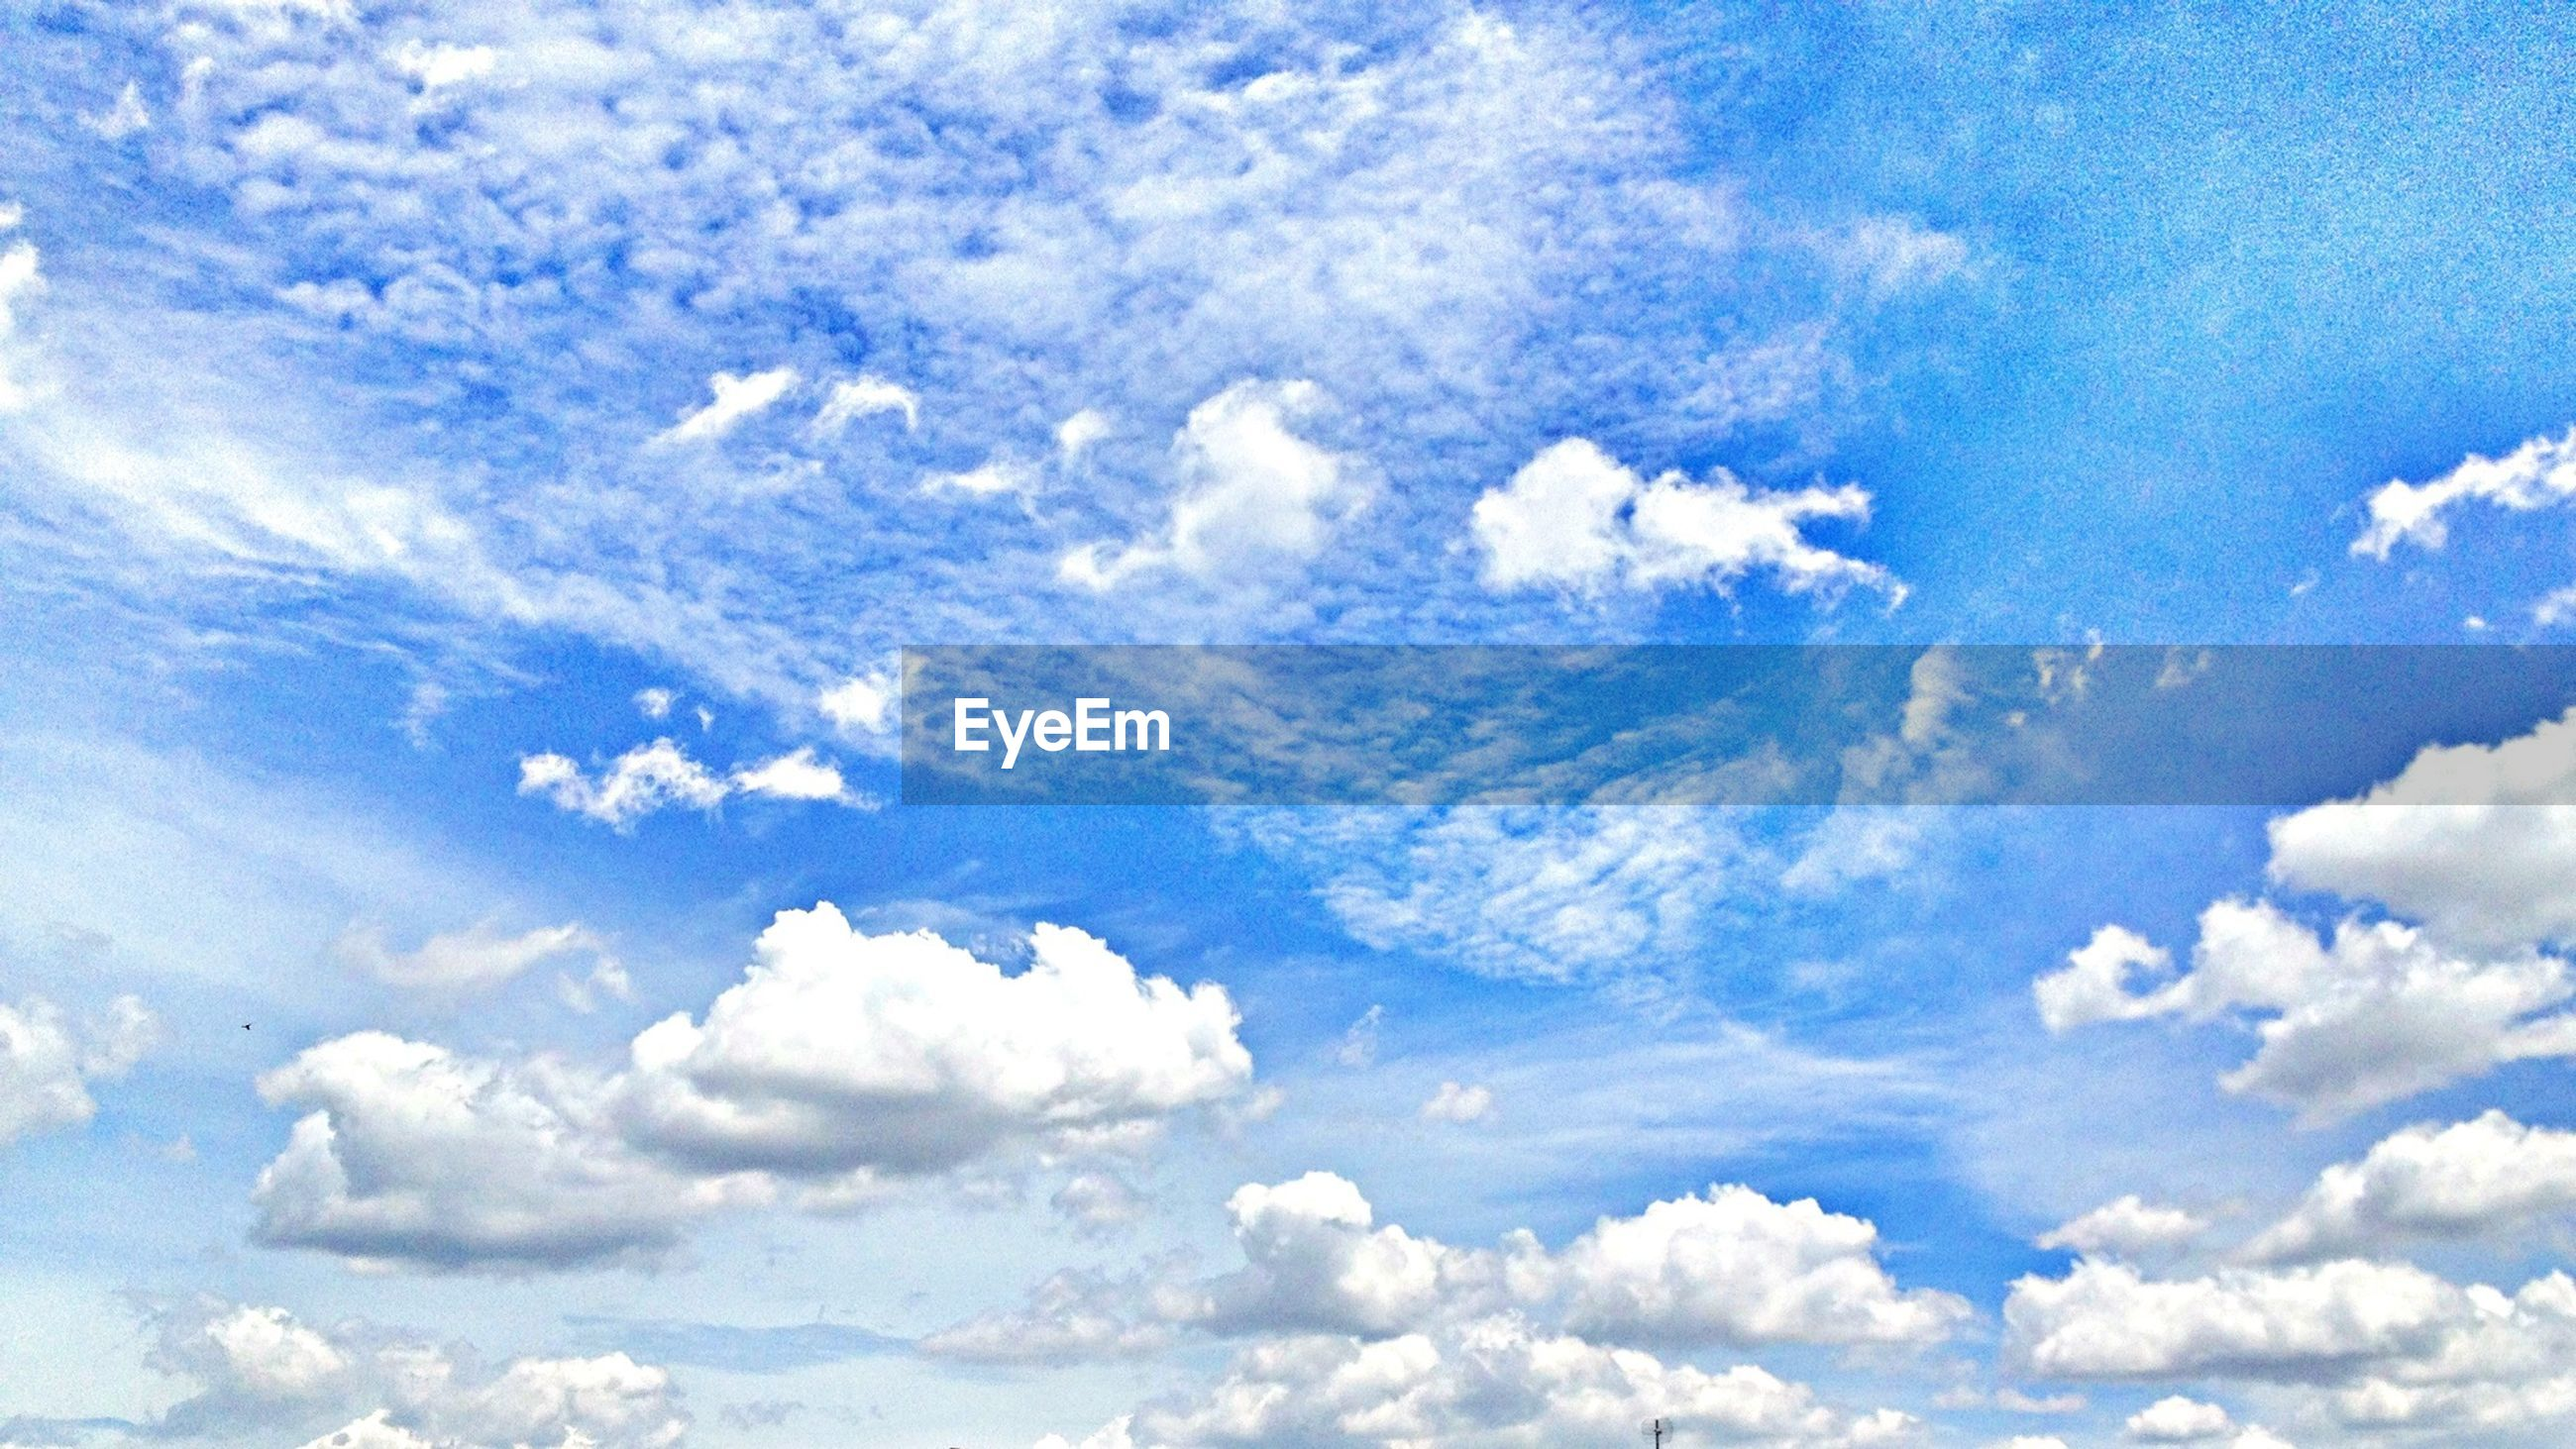 sky, beauty in nature, sky only, blue, cloud - sky, tranquility, low angle view, scenics, backgrounds, nature, tranquil scene, white color, full frame, cloudscape, cloudy, cloud, idyllic, white, day, fluffy